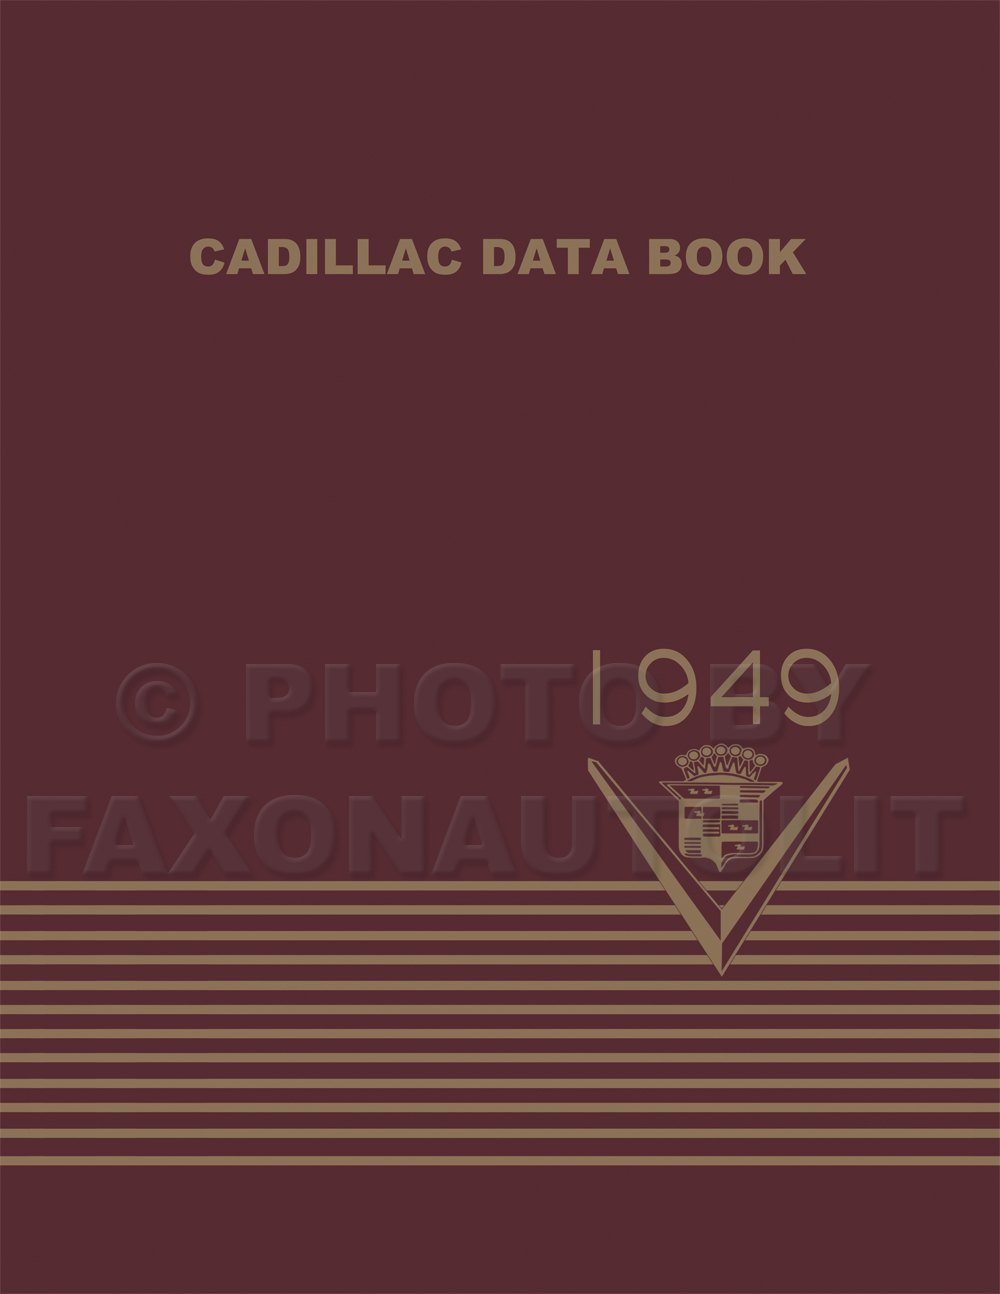 1949 Cadillac Data Book Reprint